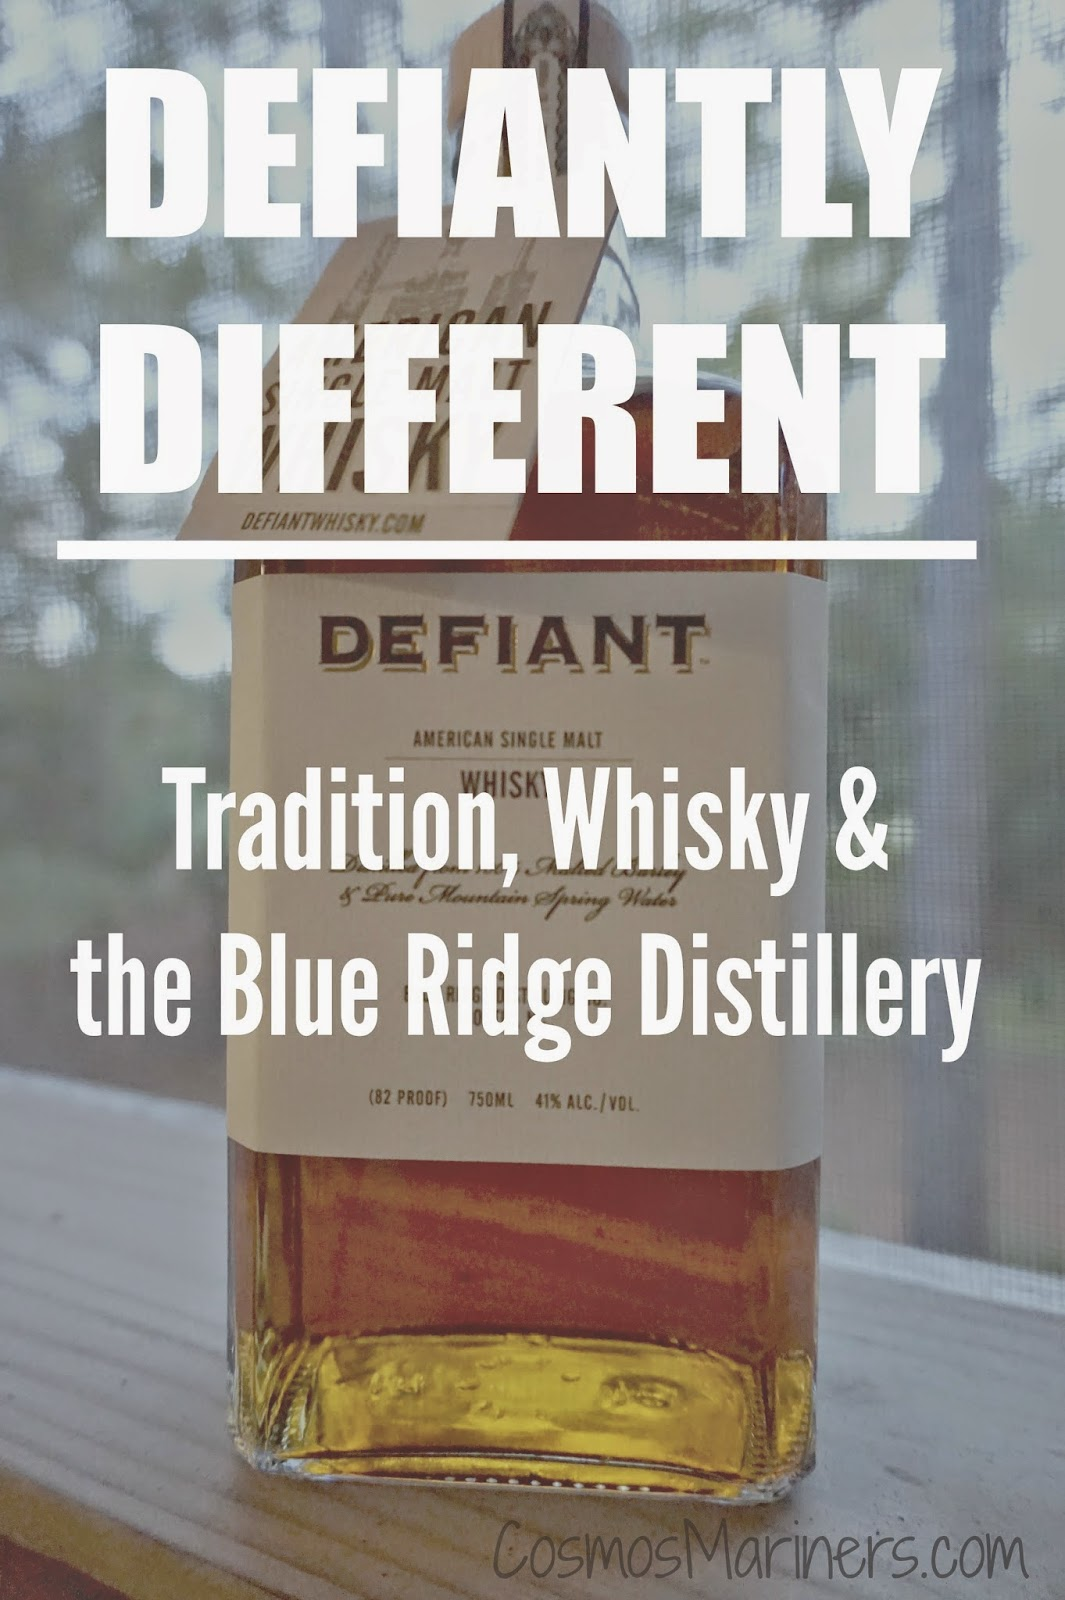 Defiant Whisky, Bue Ridge Distillery, Golden Valley, NC | CosmosMariners.com